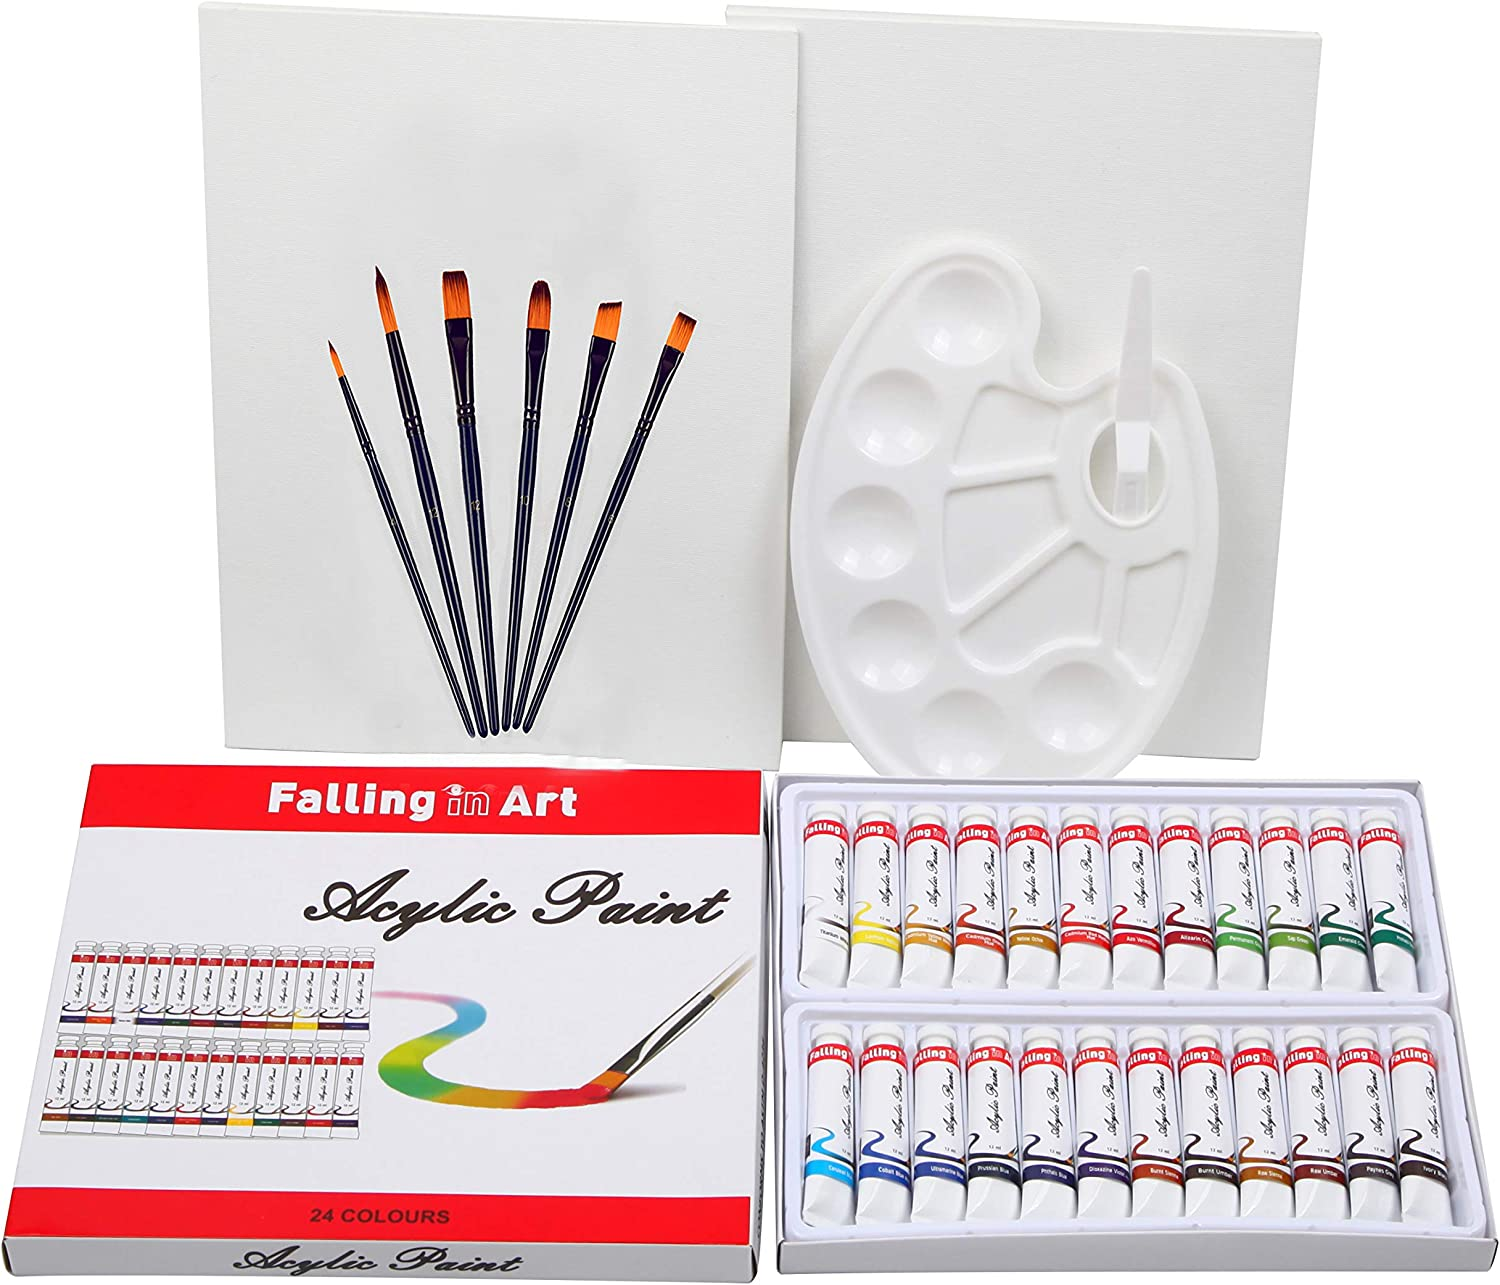 Falling In Art 34-Pieces Acrylic Artist Paint Set - with 24colors Acrylic Tubes, 6 Brushes, 9'' x 12'' Canvas Panels, 10 Well Portable Palette and Plastic Mixing Knife